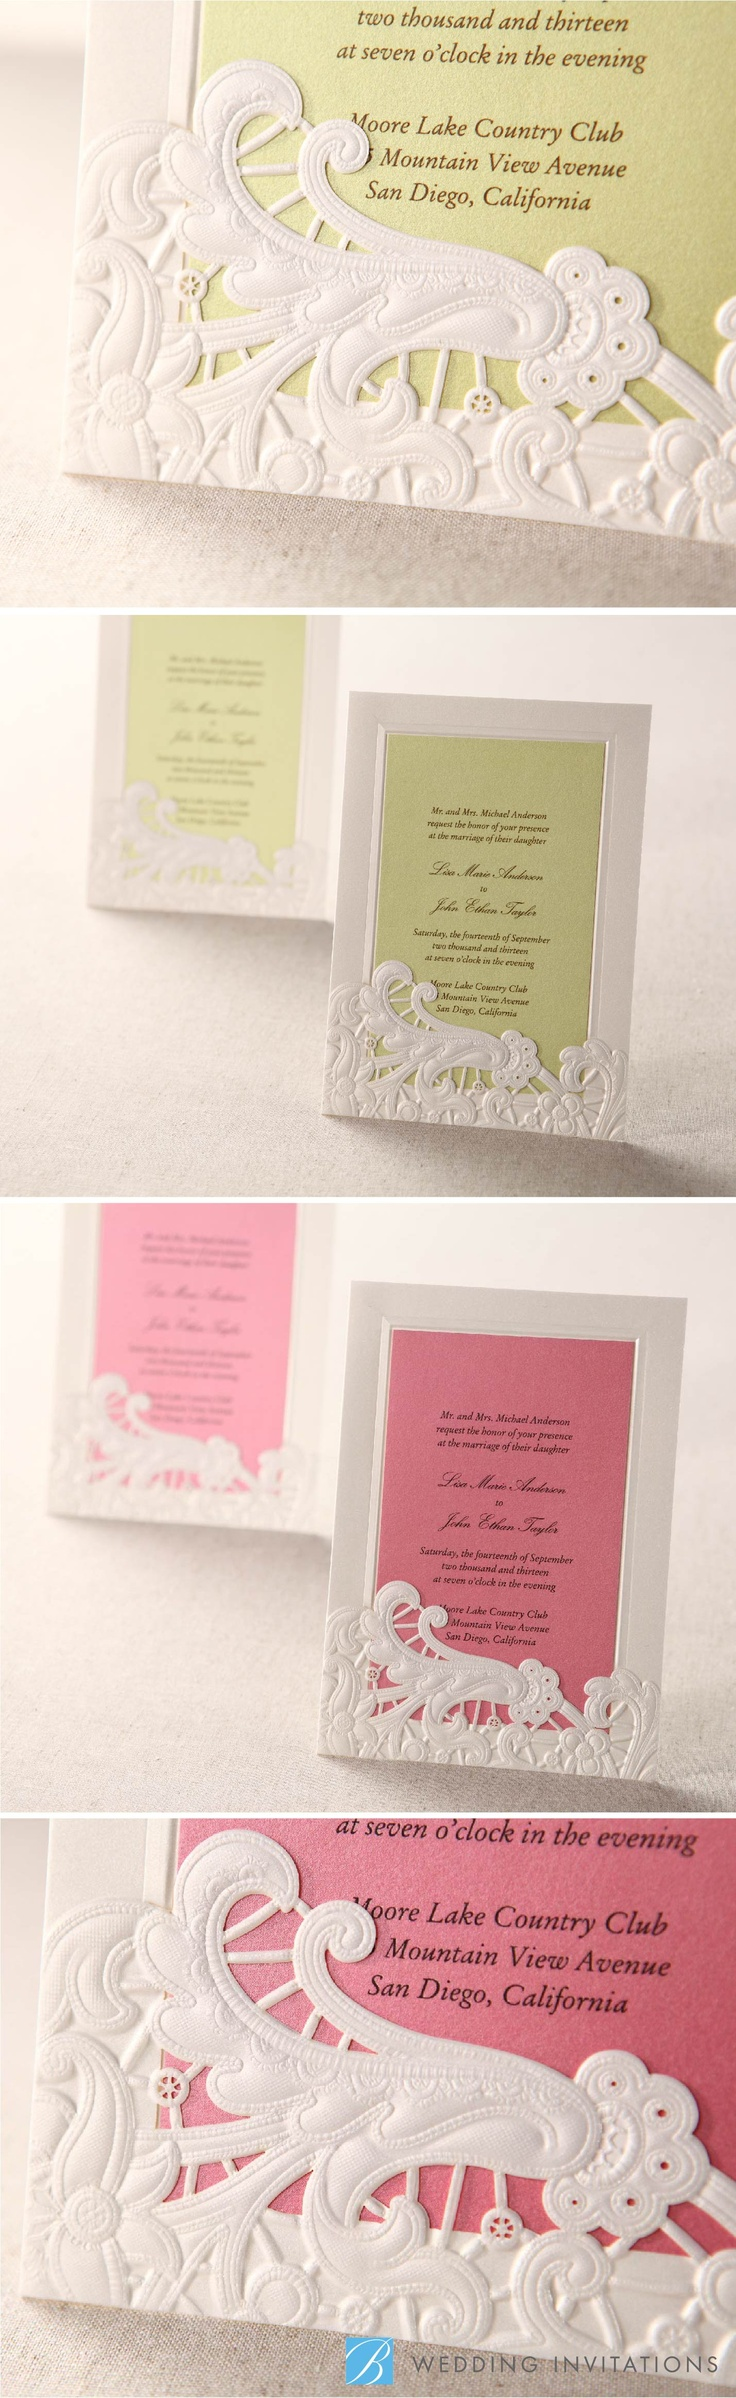 23 Best Wedding Invitations Images On Pinterest Wedding Stationery